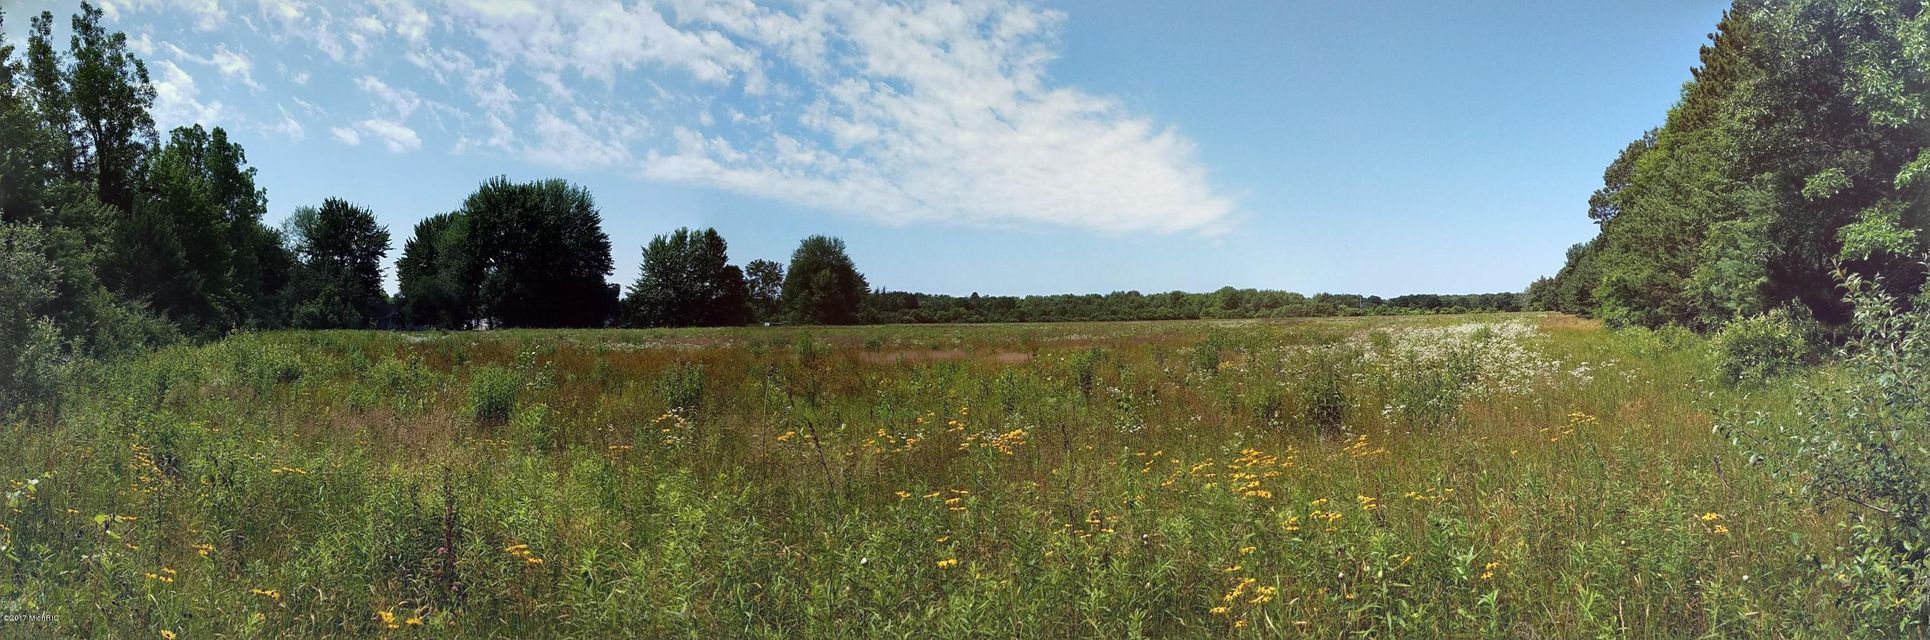 Land for Sale at South Brooks South Brooks Muskegon, Michigan 49444 United States